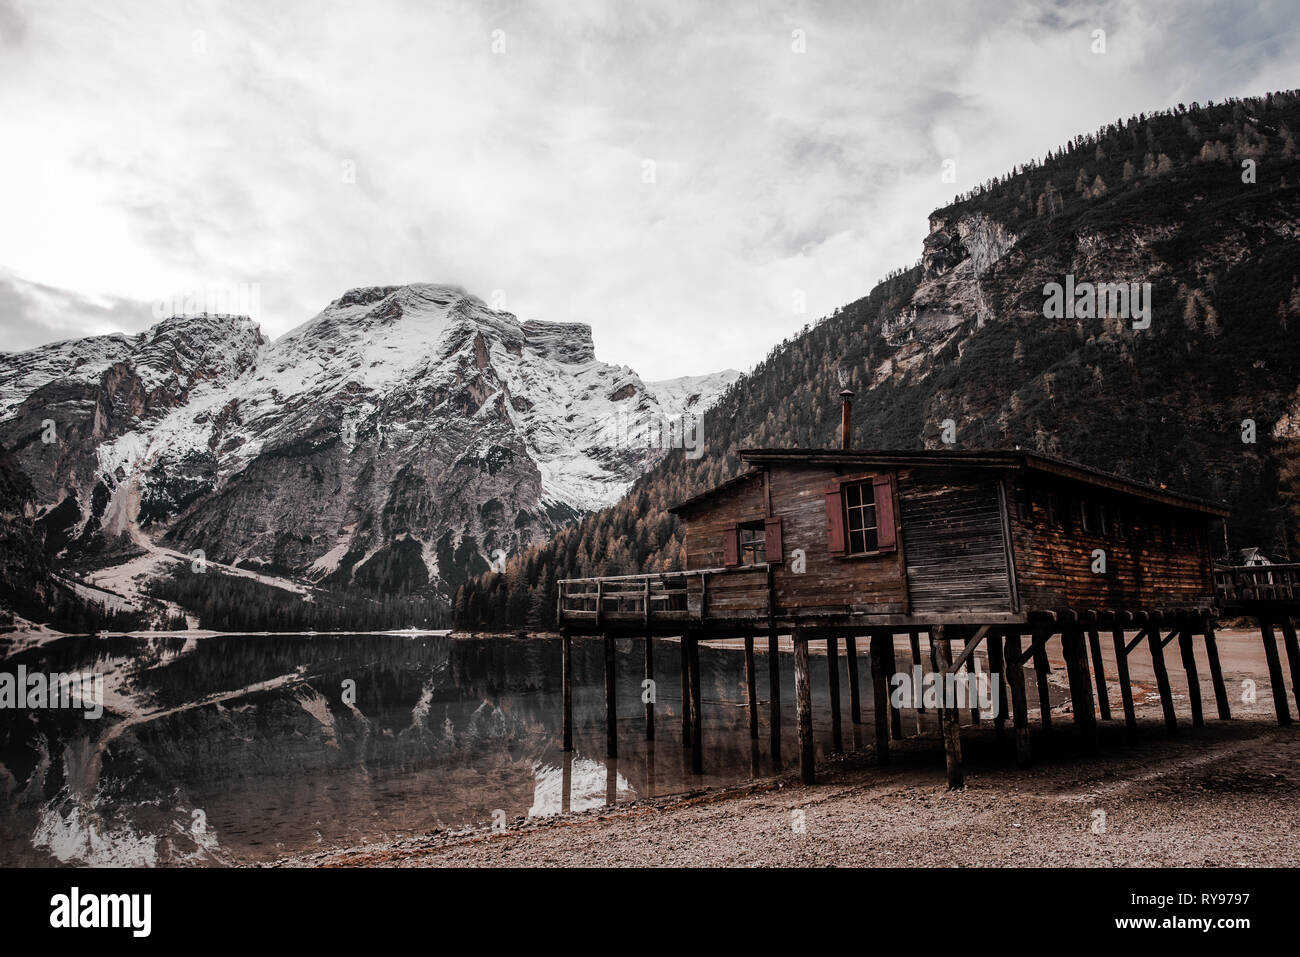 Wooden cabin on stilts on coast near amazing lake and stone high mountains and cloudy sky in Italy - Stock Image